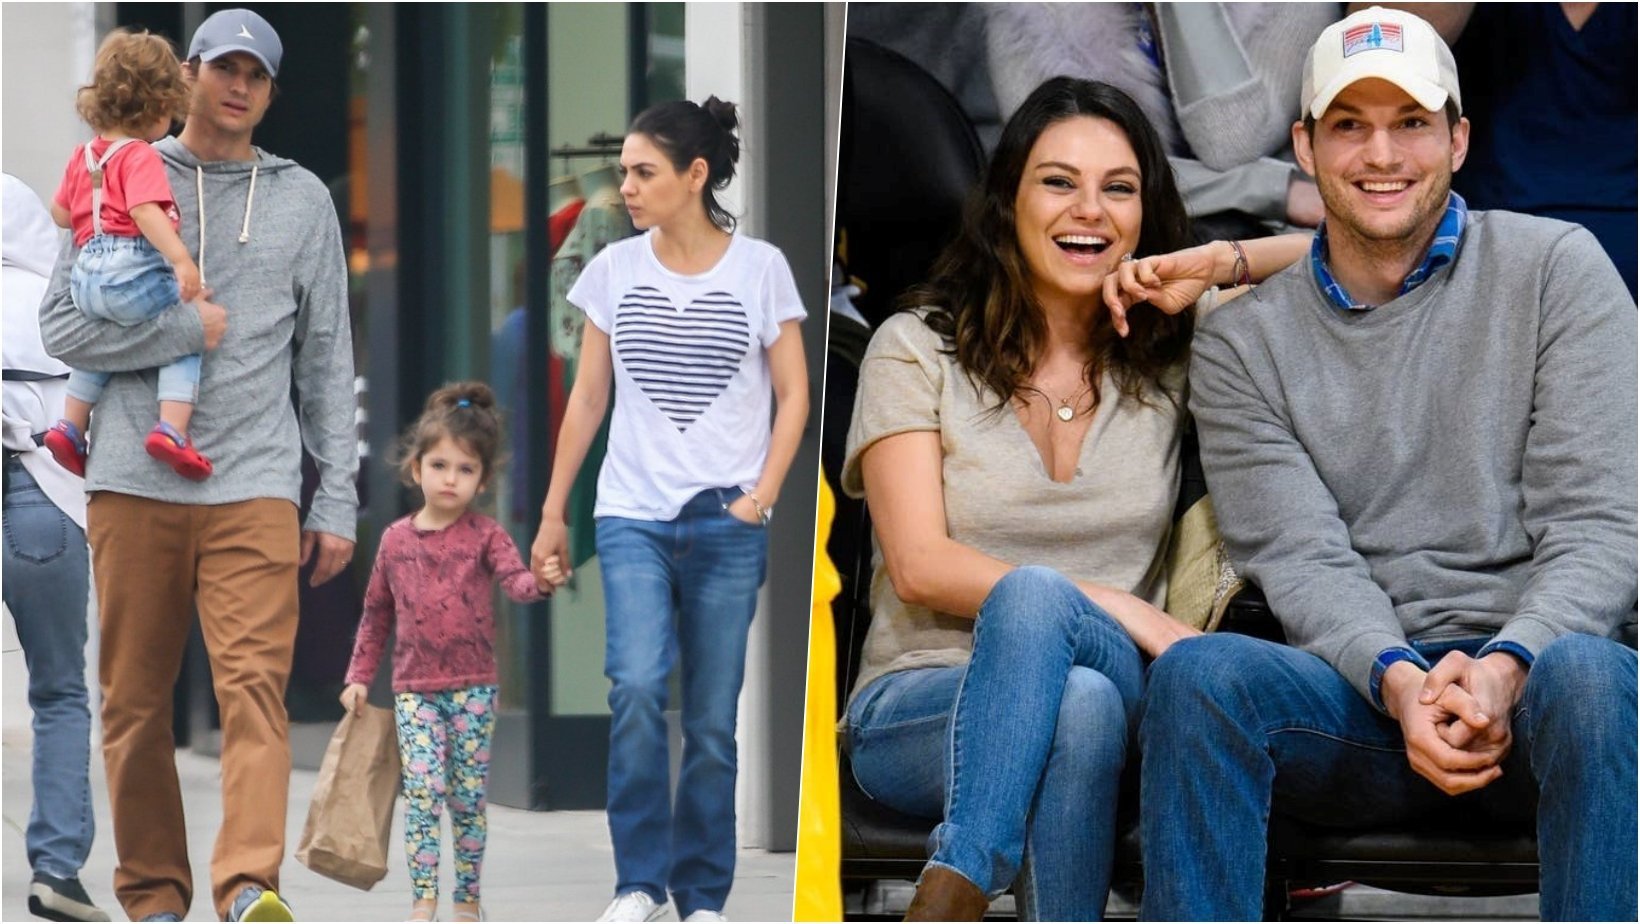 6 facebook cover 26.jpg?resize=412,275 - Mila Kunis Reveals That Ashton Kutcher Disagreed With Her Parenting When She Encouraged Their Daughter To Push Another Kid